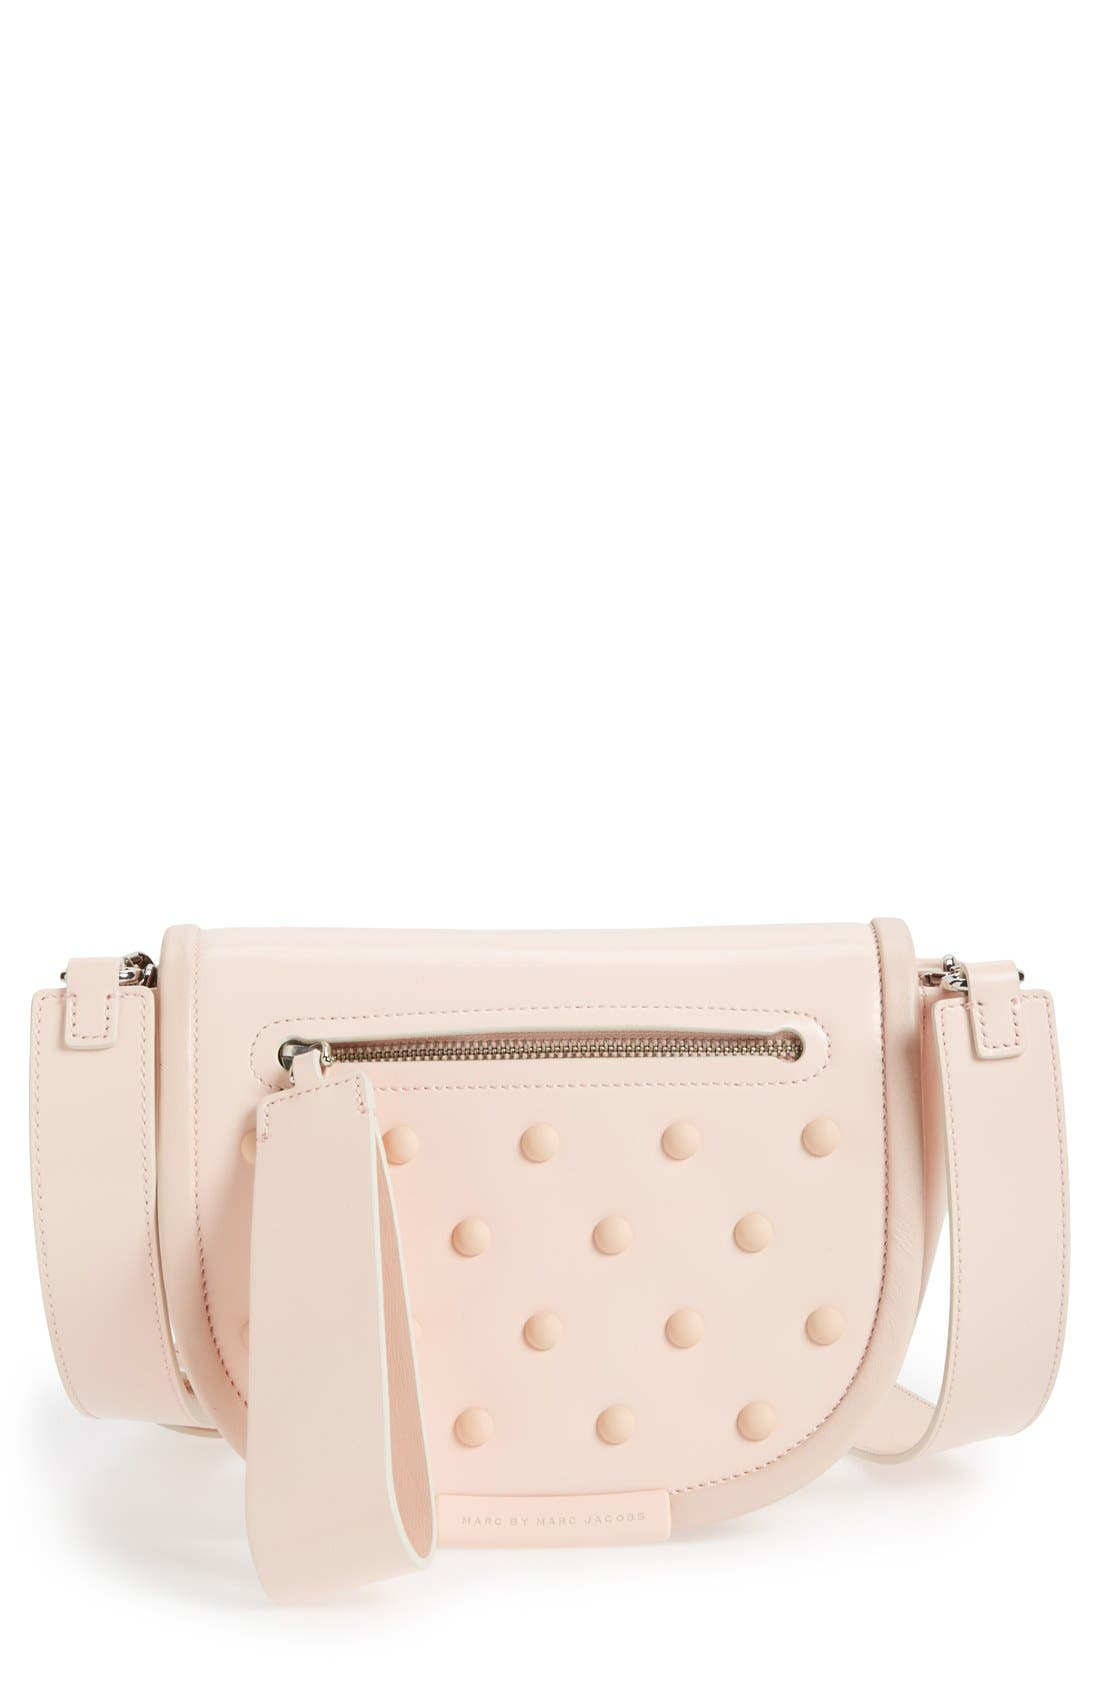 Alternate Image 1 Selected - MARC BY MARC JACOBS 'Luna' Crossbody Bag